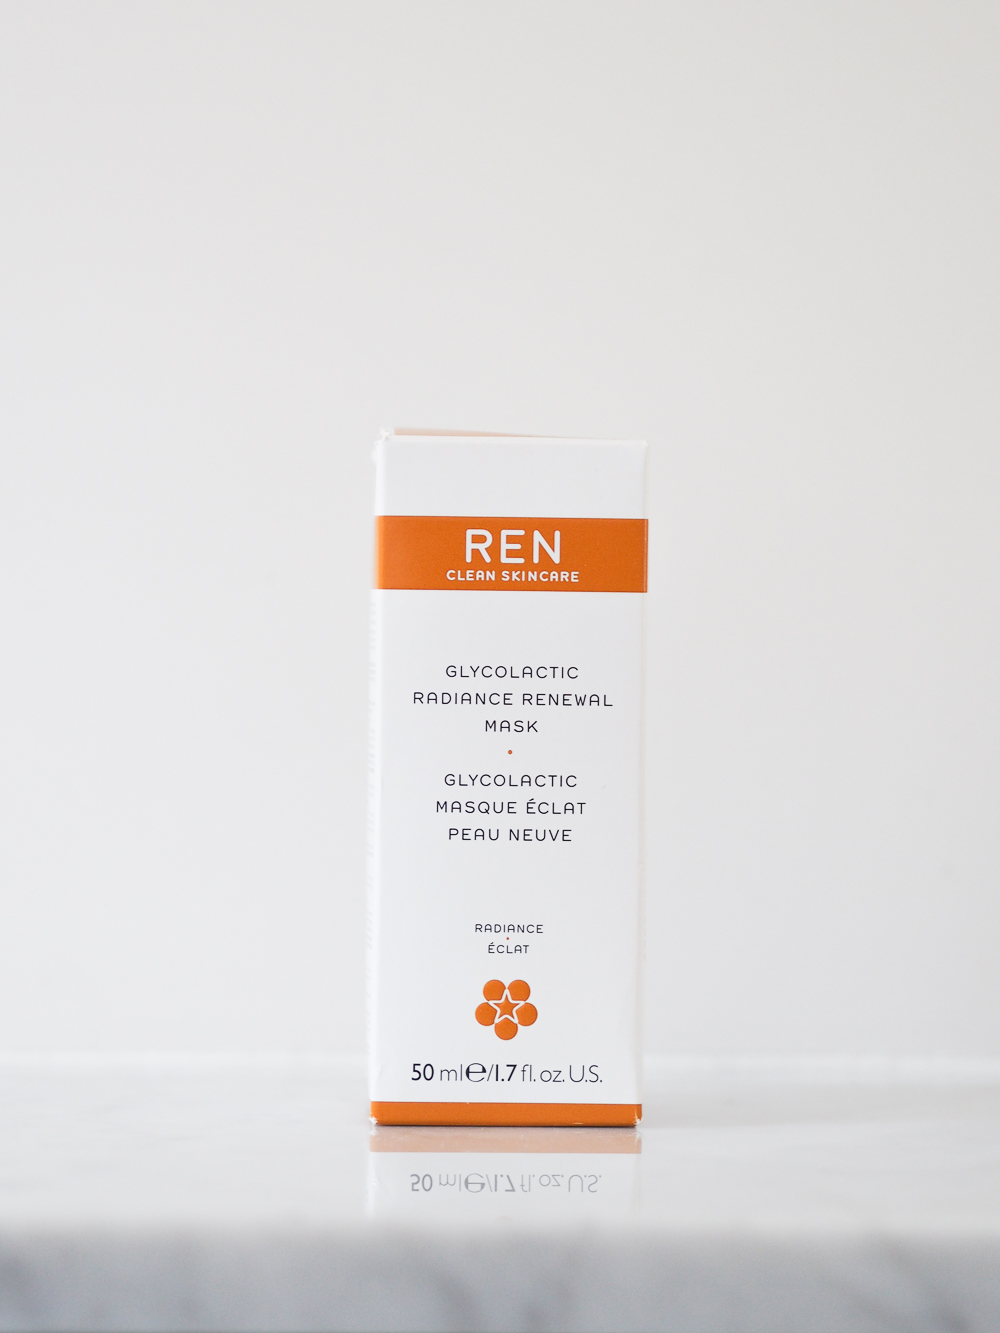 REN Glycolactic Radiance Renewal Mask review | Design Hunter